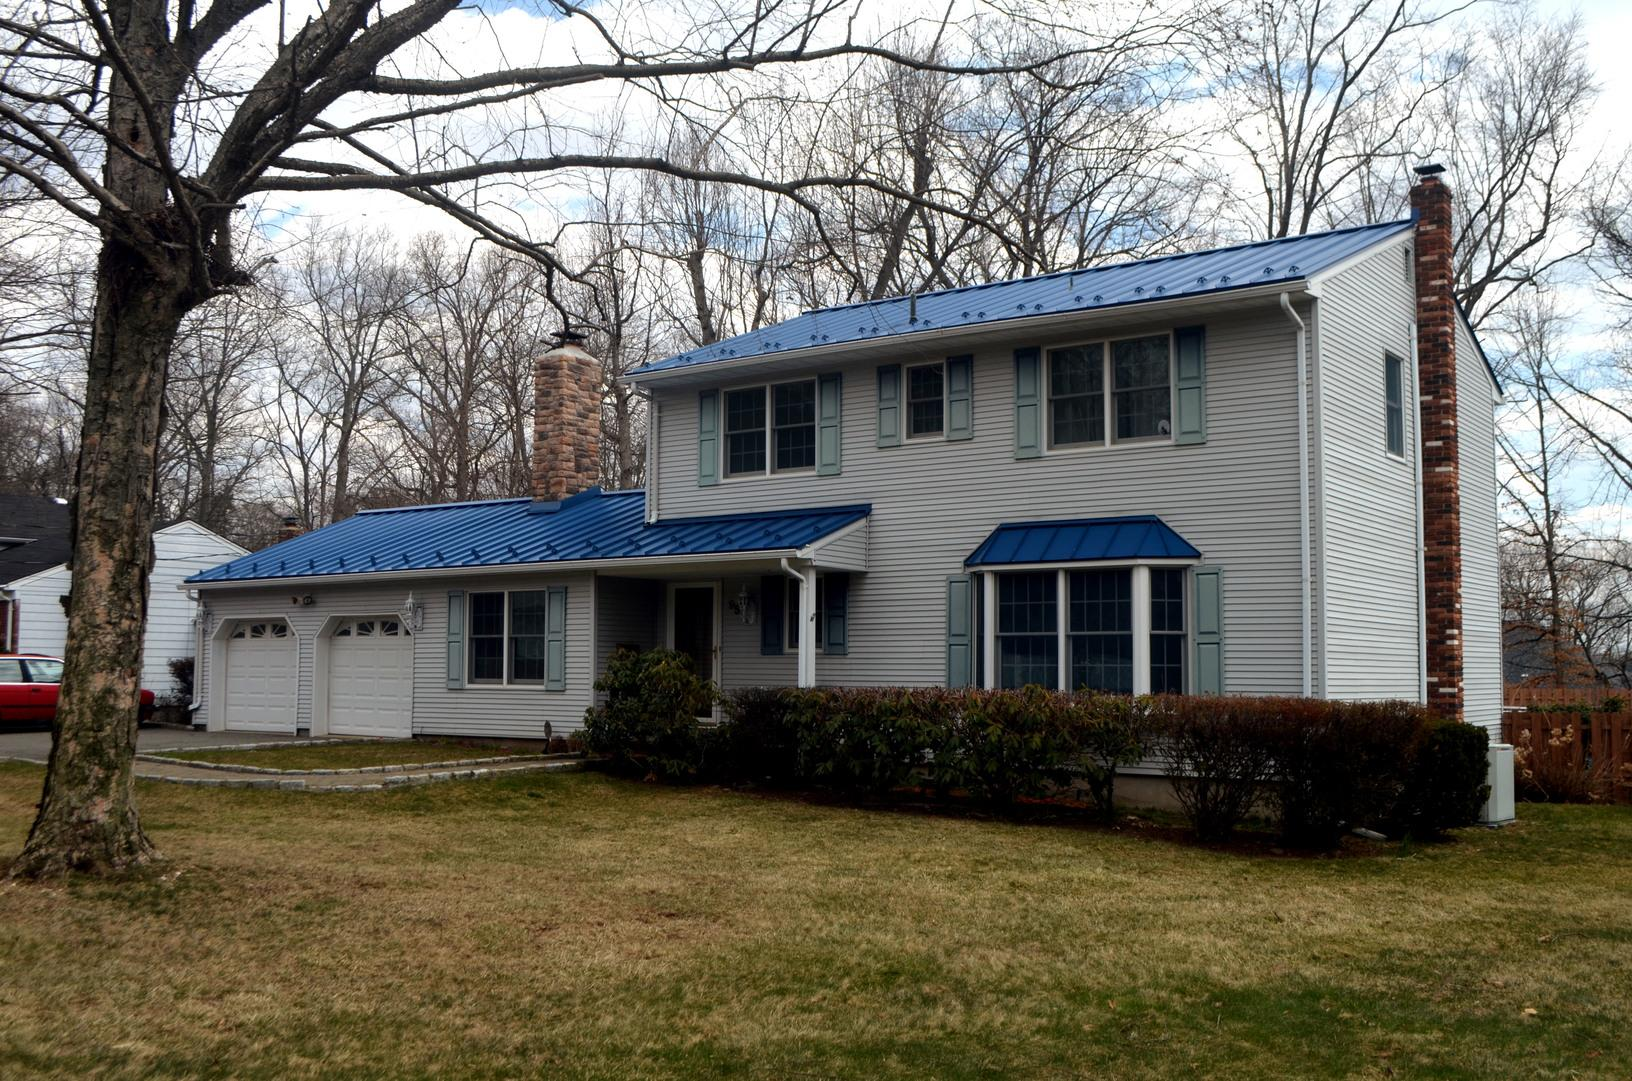 Custom Royal Blue Standing Seam Metal Roof with Snow Guards Installation in Rockaway, NJ - After Photo